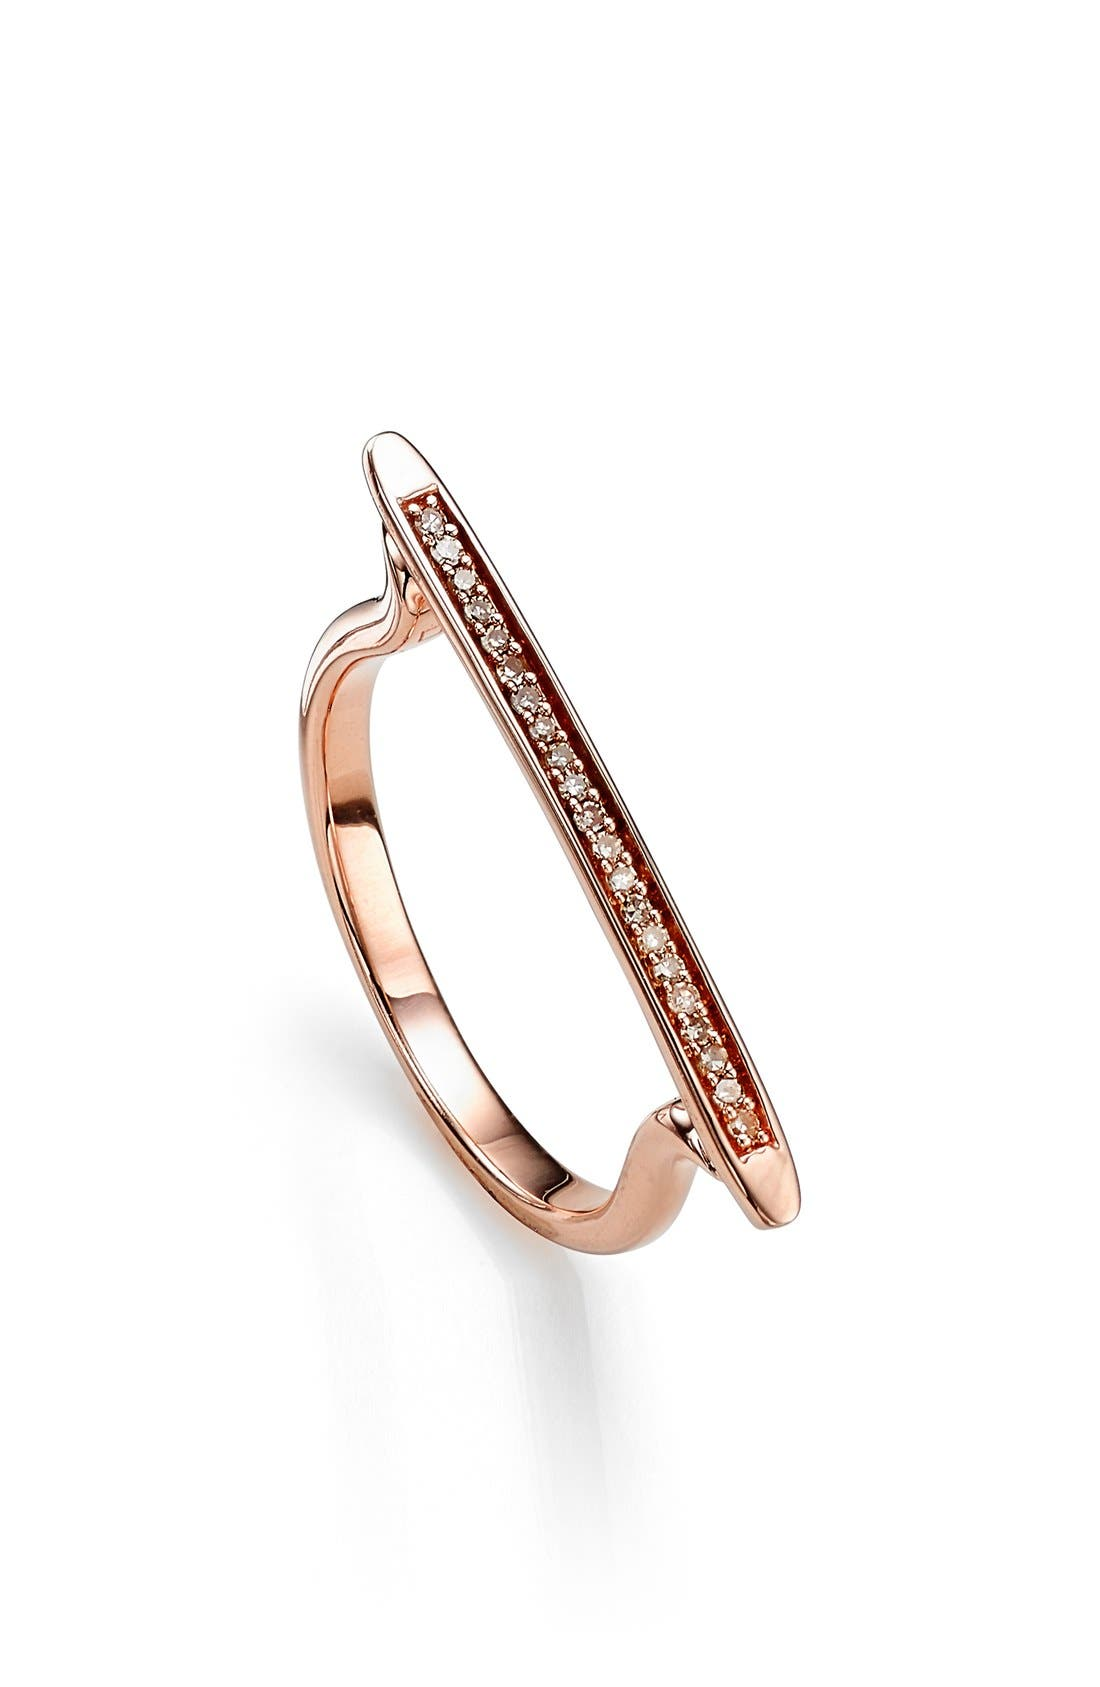 Alternate Image 1 Selected - Monica Vinader 'Skinny' Diamond Stacking Ring